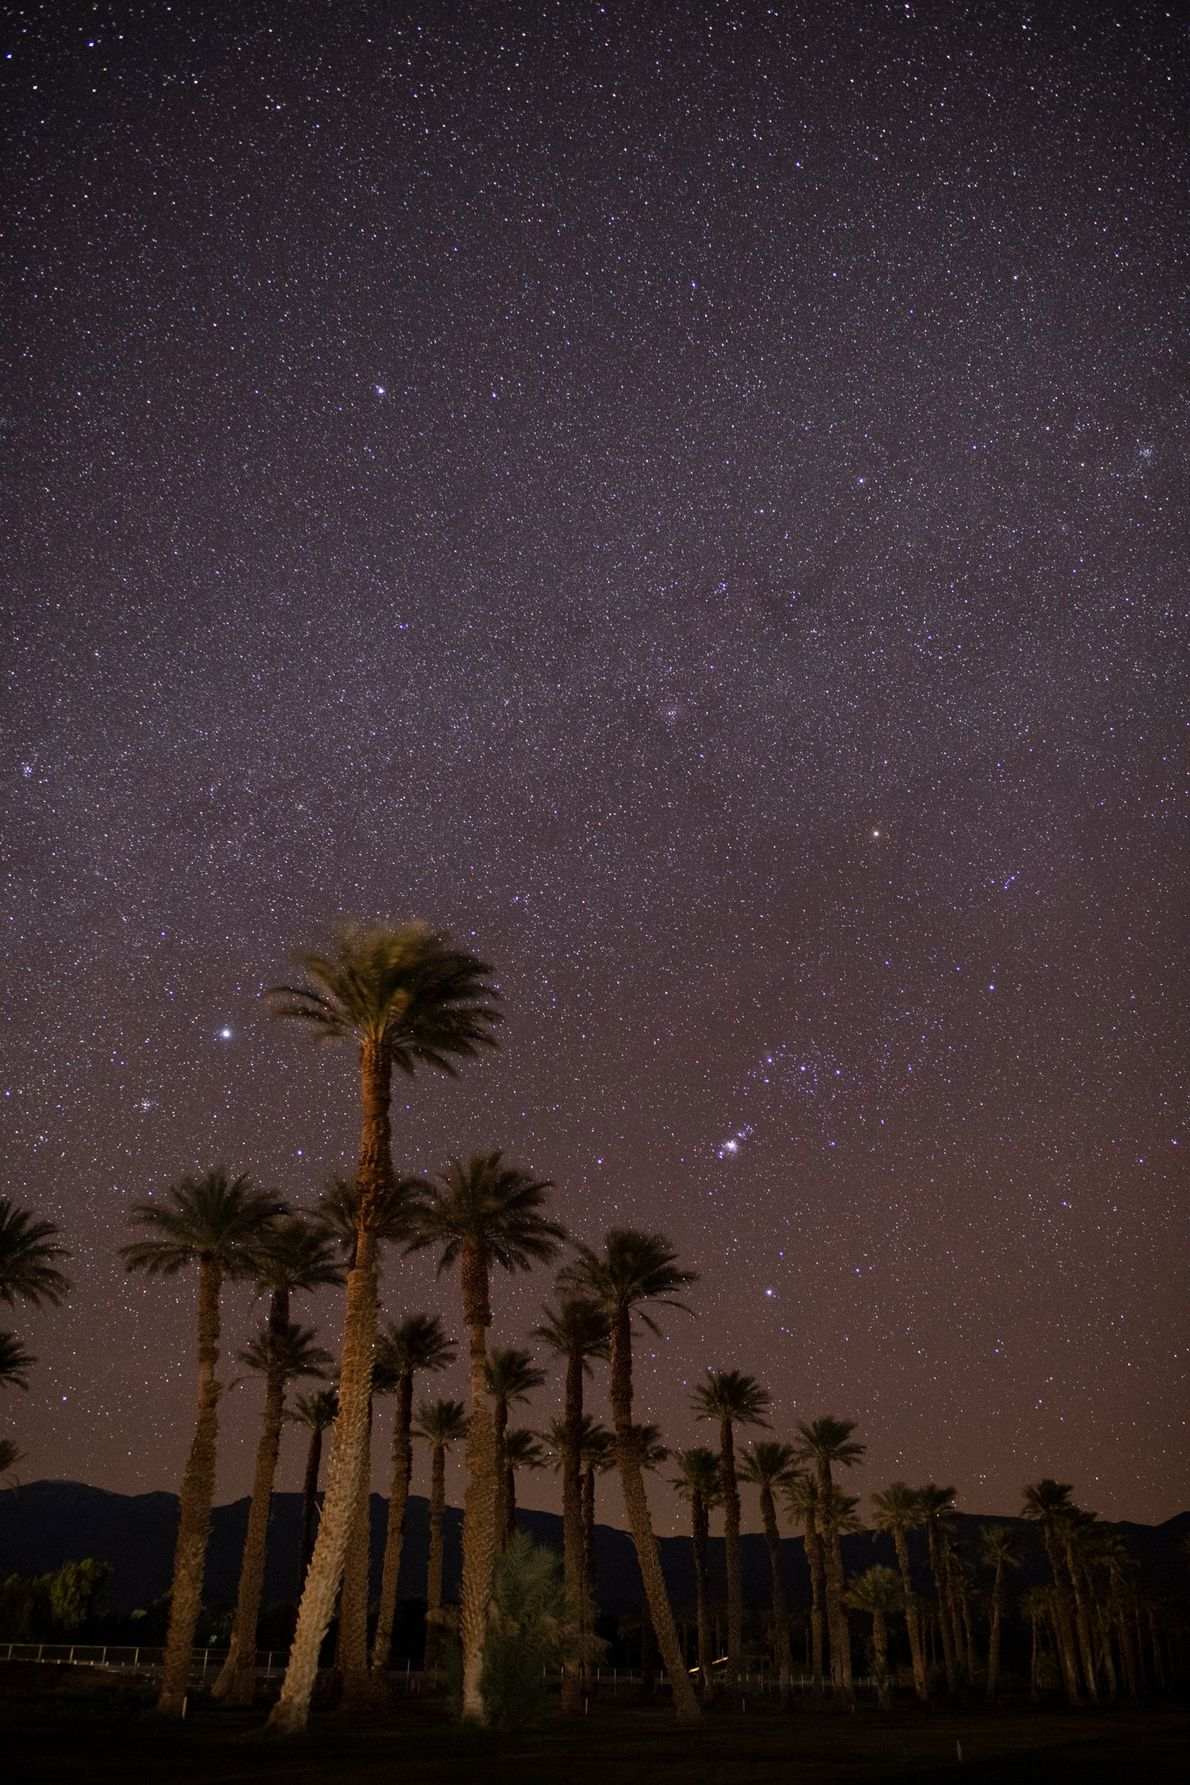 Above the palm trees of Death Valley's Furnace Creek, Sirius, the brightest star in the sky, ...